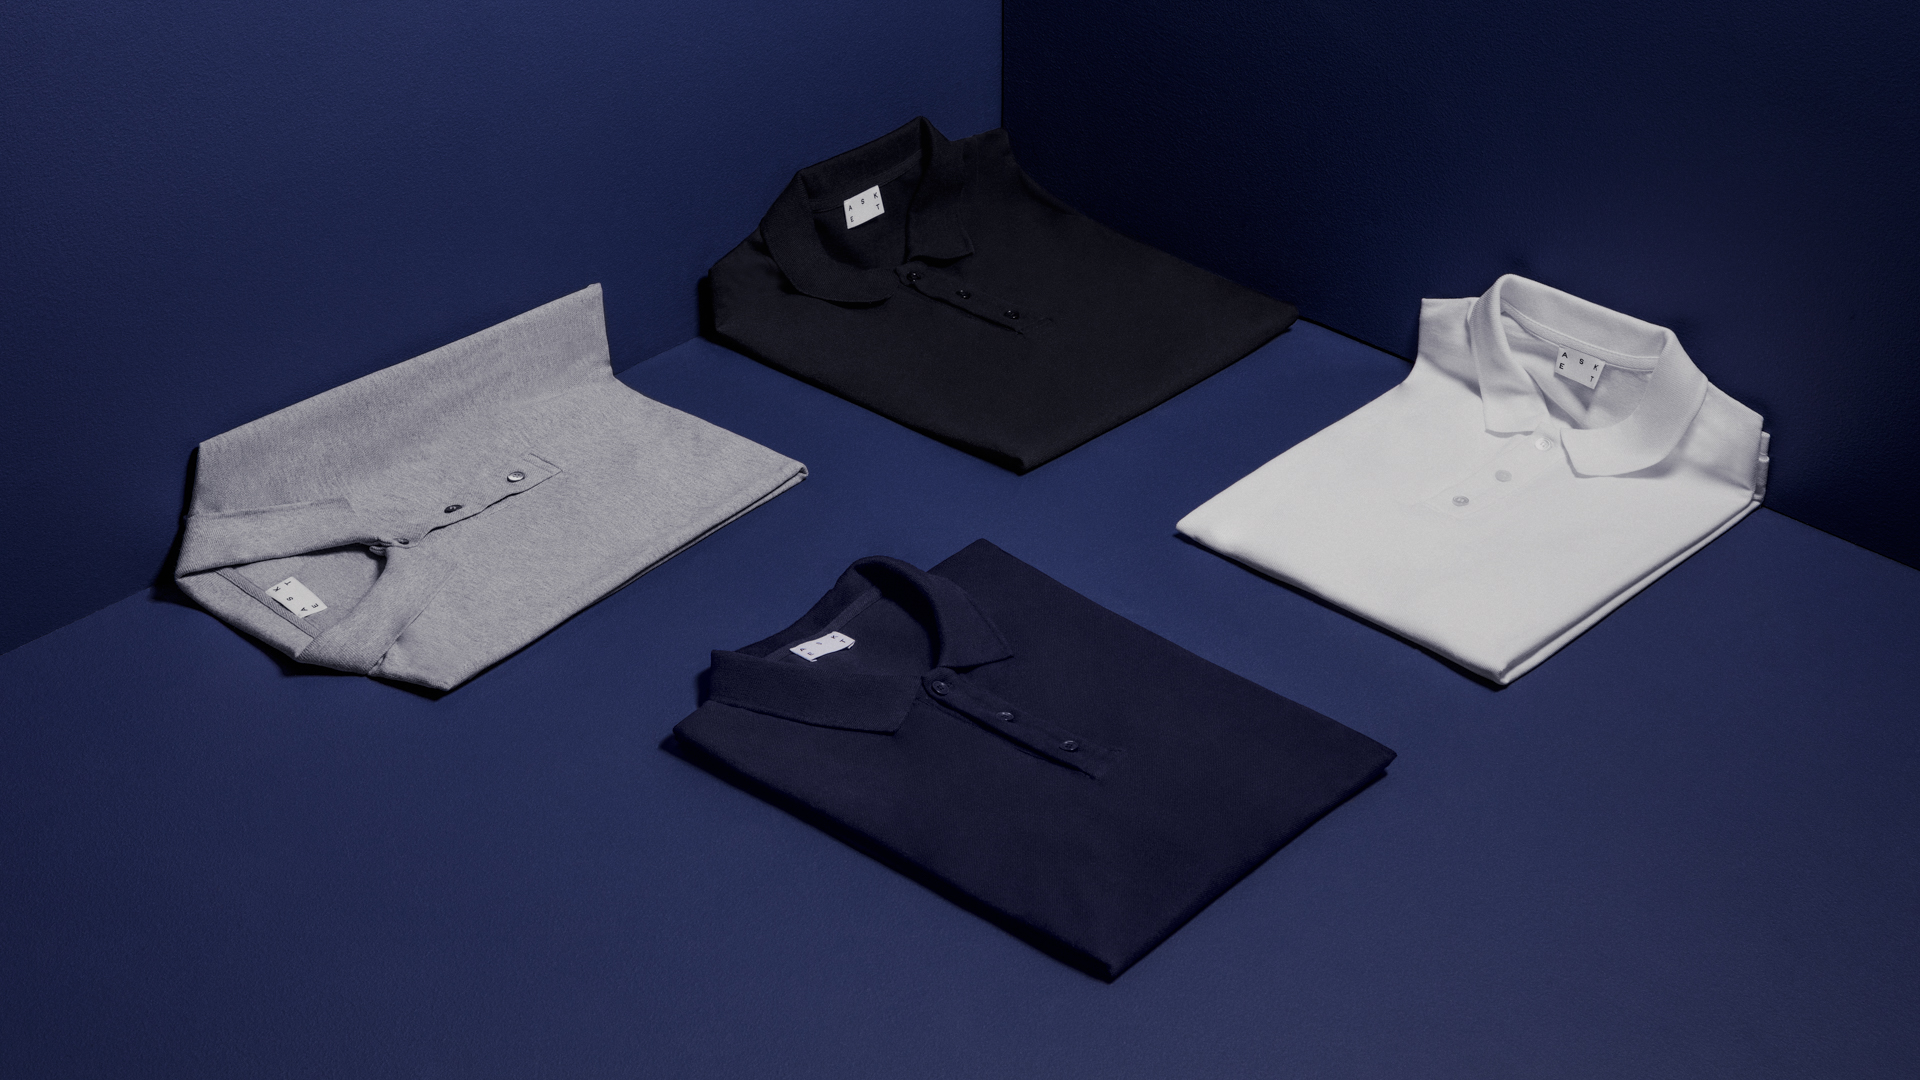 Asket has just introduced polo shirts to its range of men's basics.